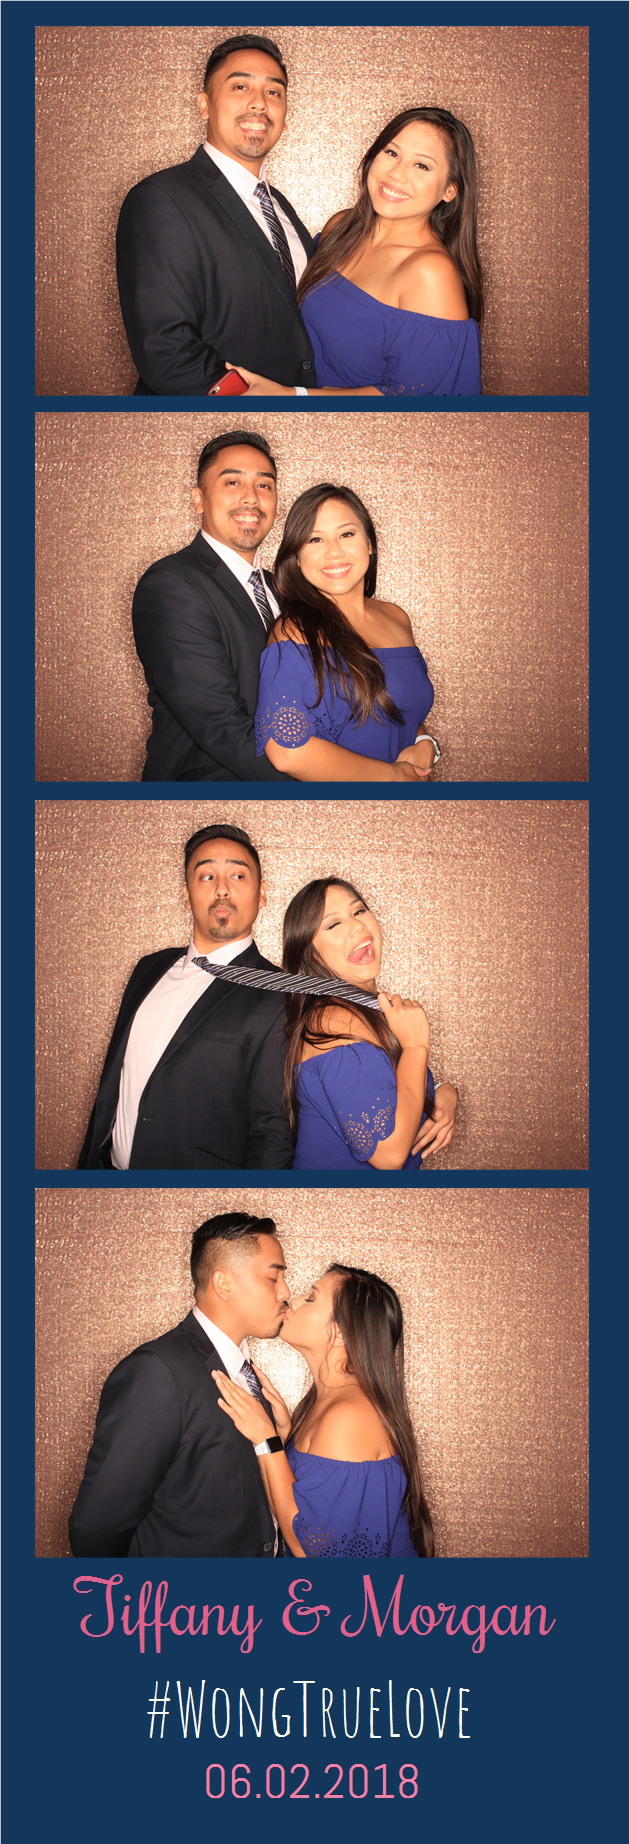 Best Photo Booth Strip